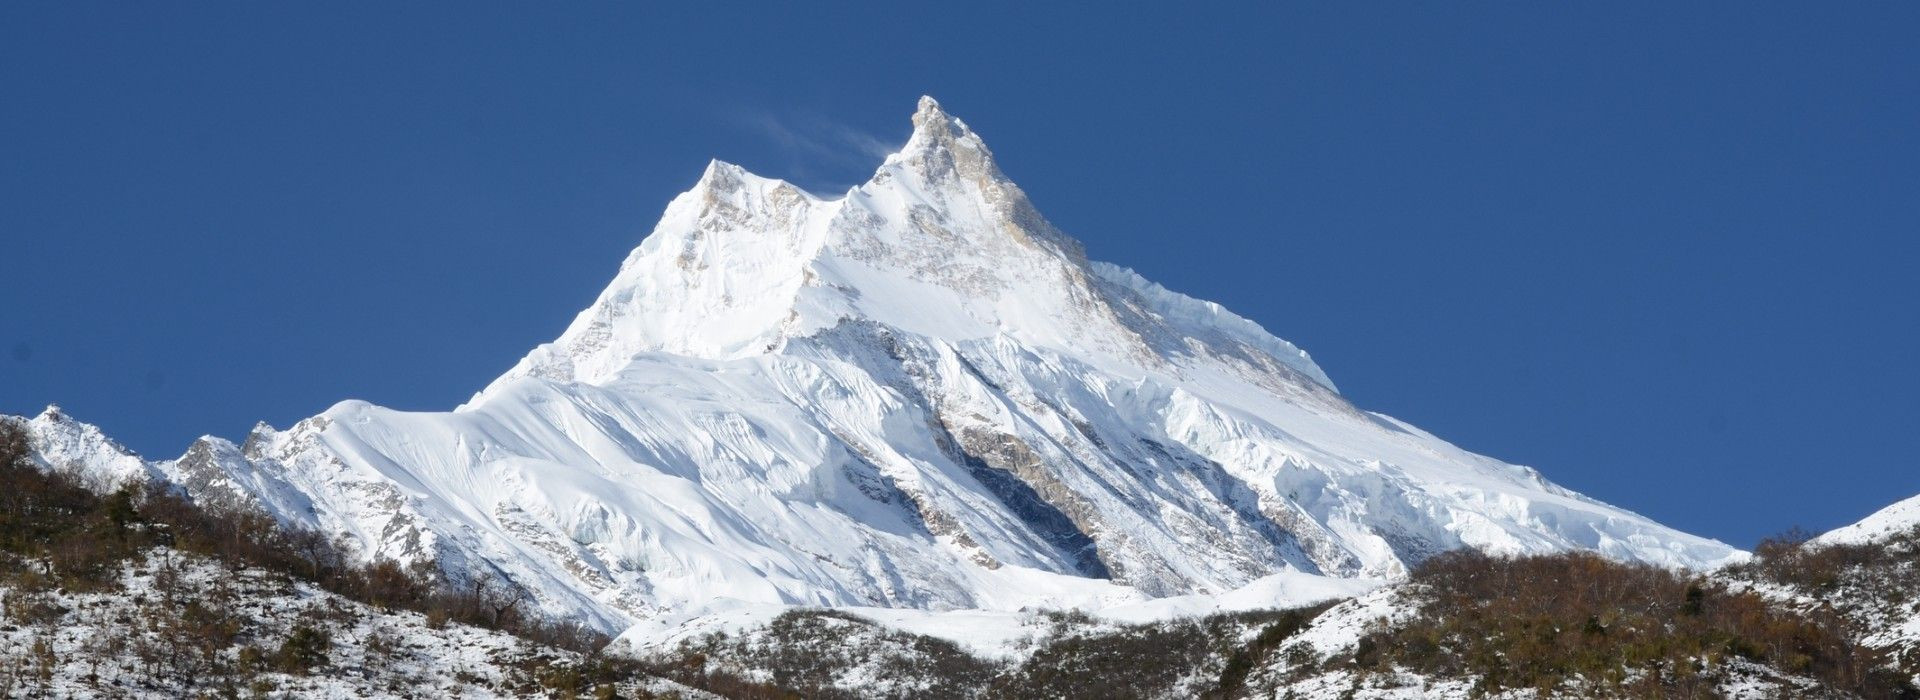 A view of Mount Manaslu and the Manaslu Trek